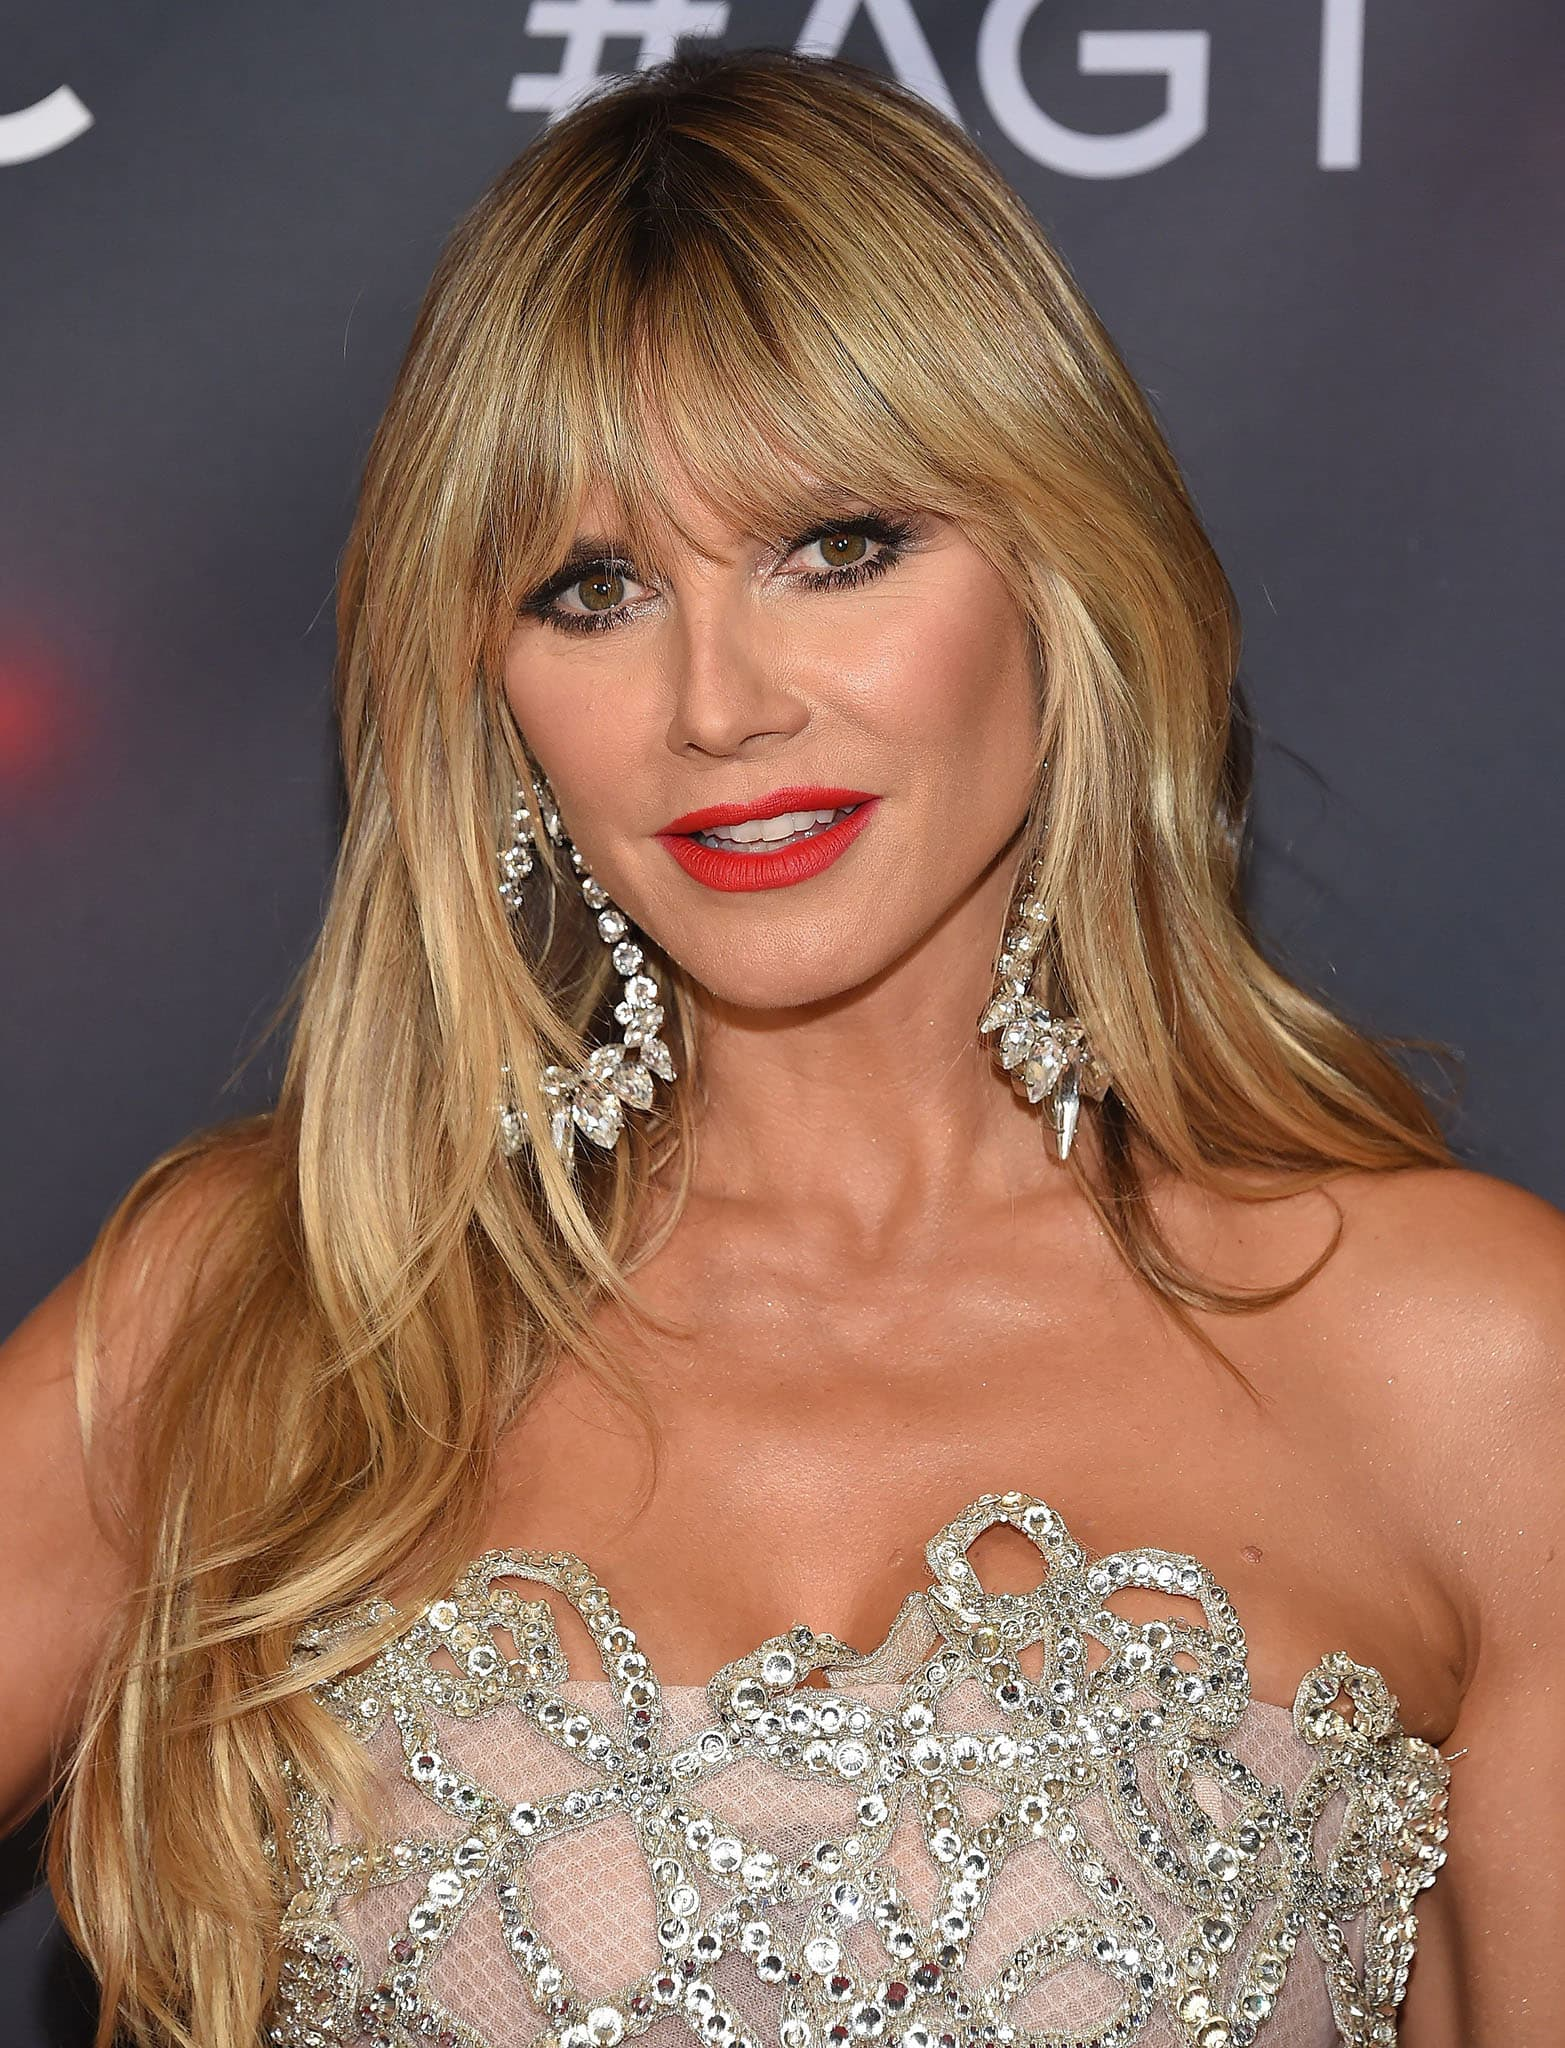 Heidi Klum wears her fringed hair down in soft waves with bold red lip color and glittery smokey eyeshadow